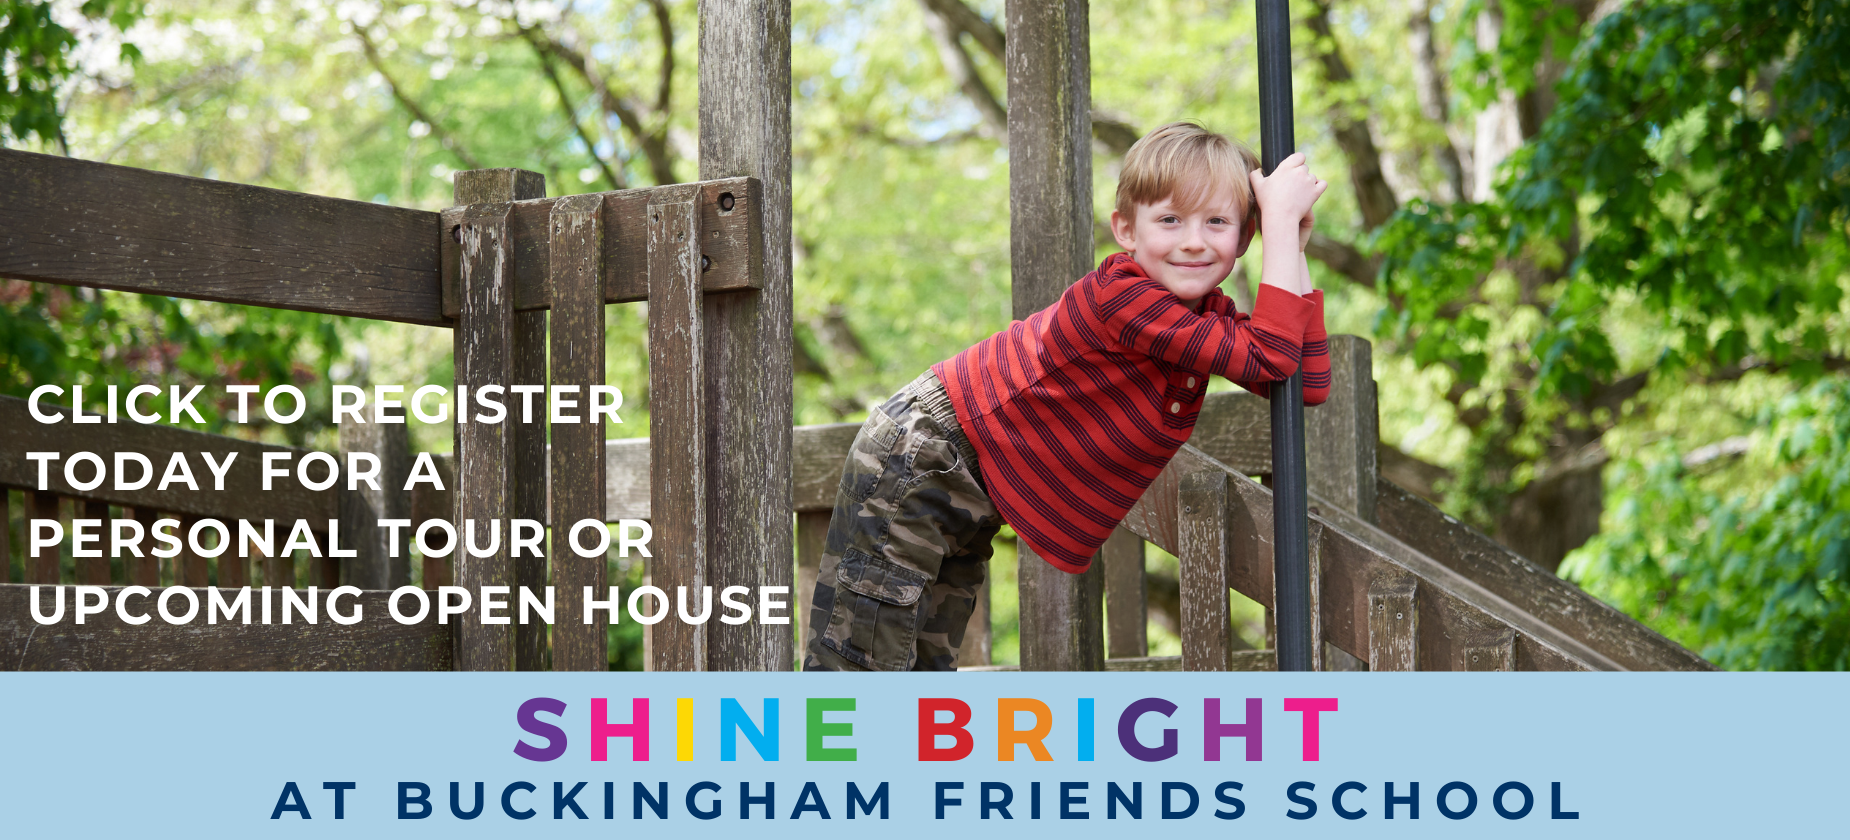 Click to register today for a personal tour or upcoming open house